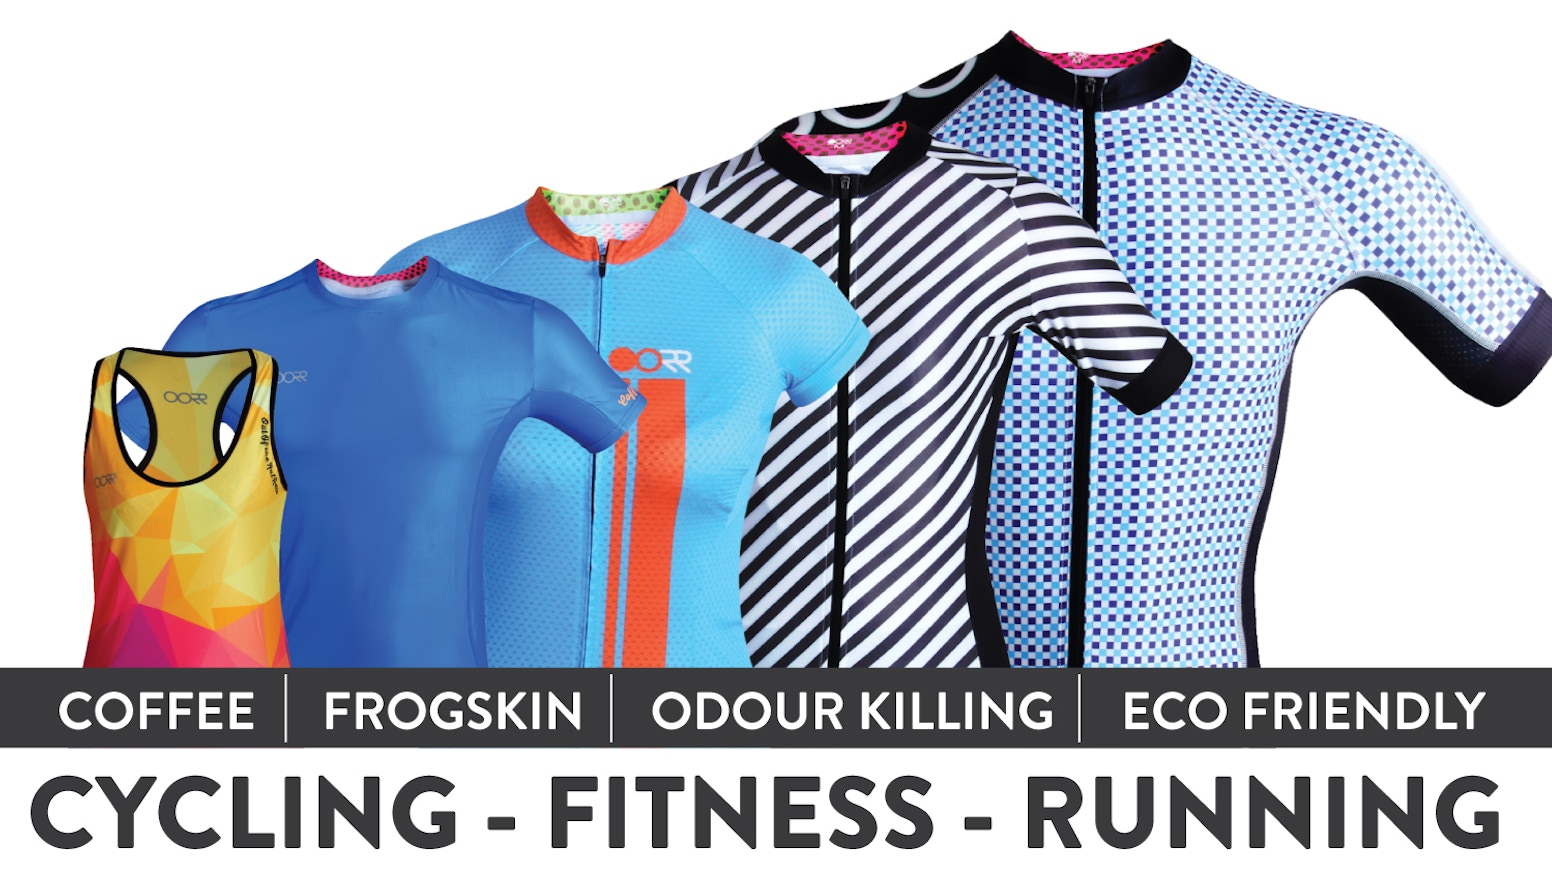 Fitness and Pro Cycling Apparel Enhanced with Coffee. Permanent Odour  Control. Eco Friendly. 28a4bb864